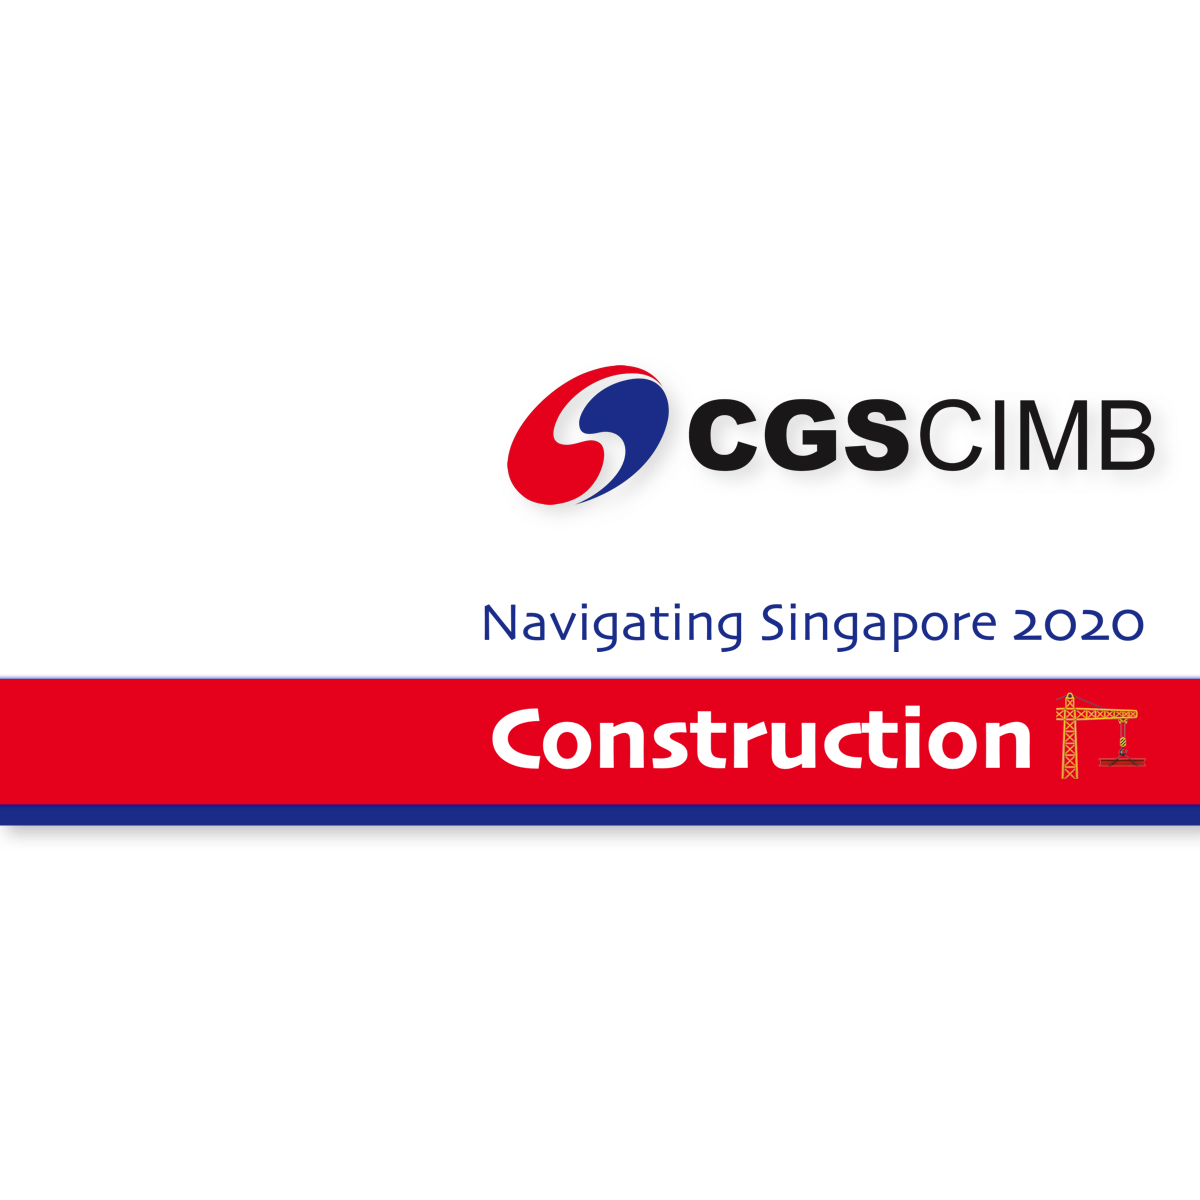 Construction Sector 2020 Outlook - CGS-CIMB Research | SGinvestors.io